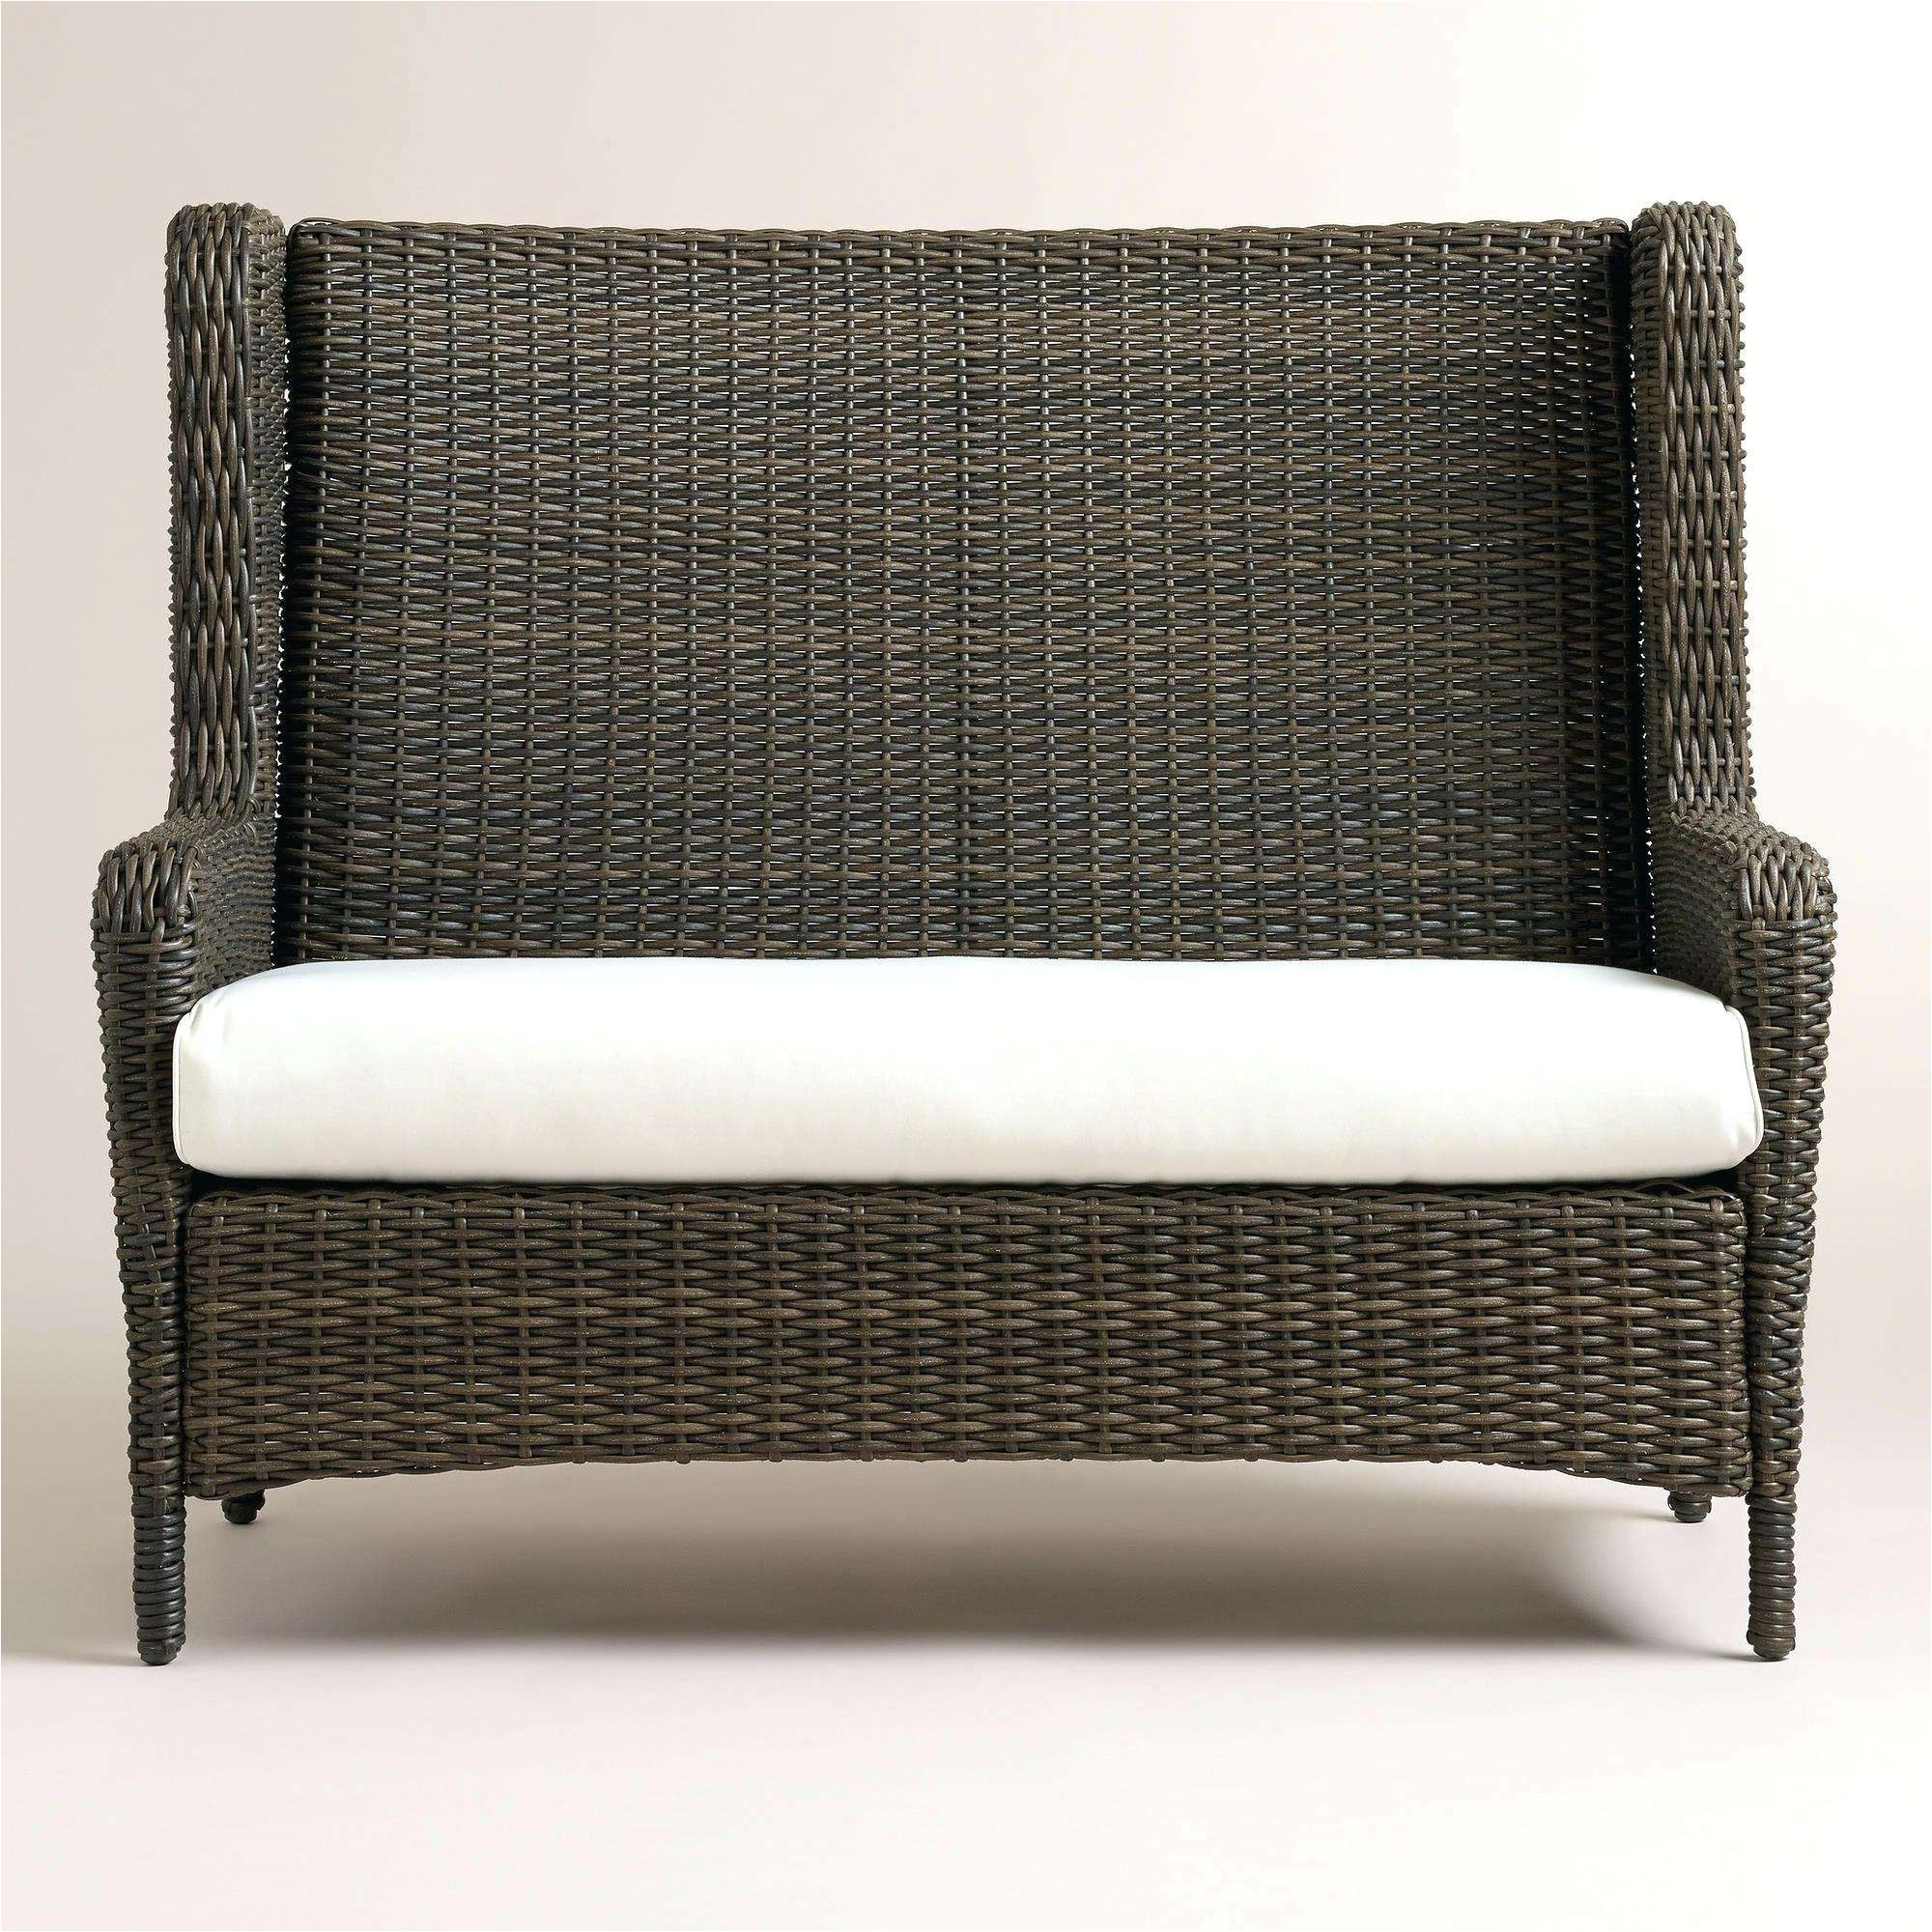 Ll Bean sofas and Chairs Wicker Outdoor sofa 0d Patio Chairs Sale Replacement Cushions Ideas